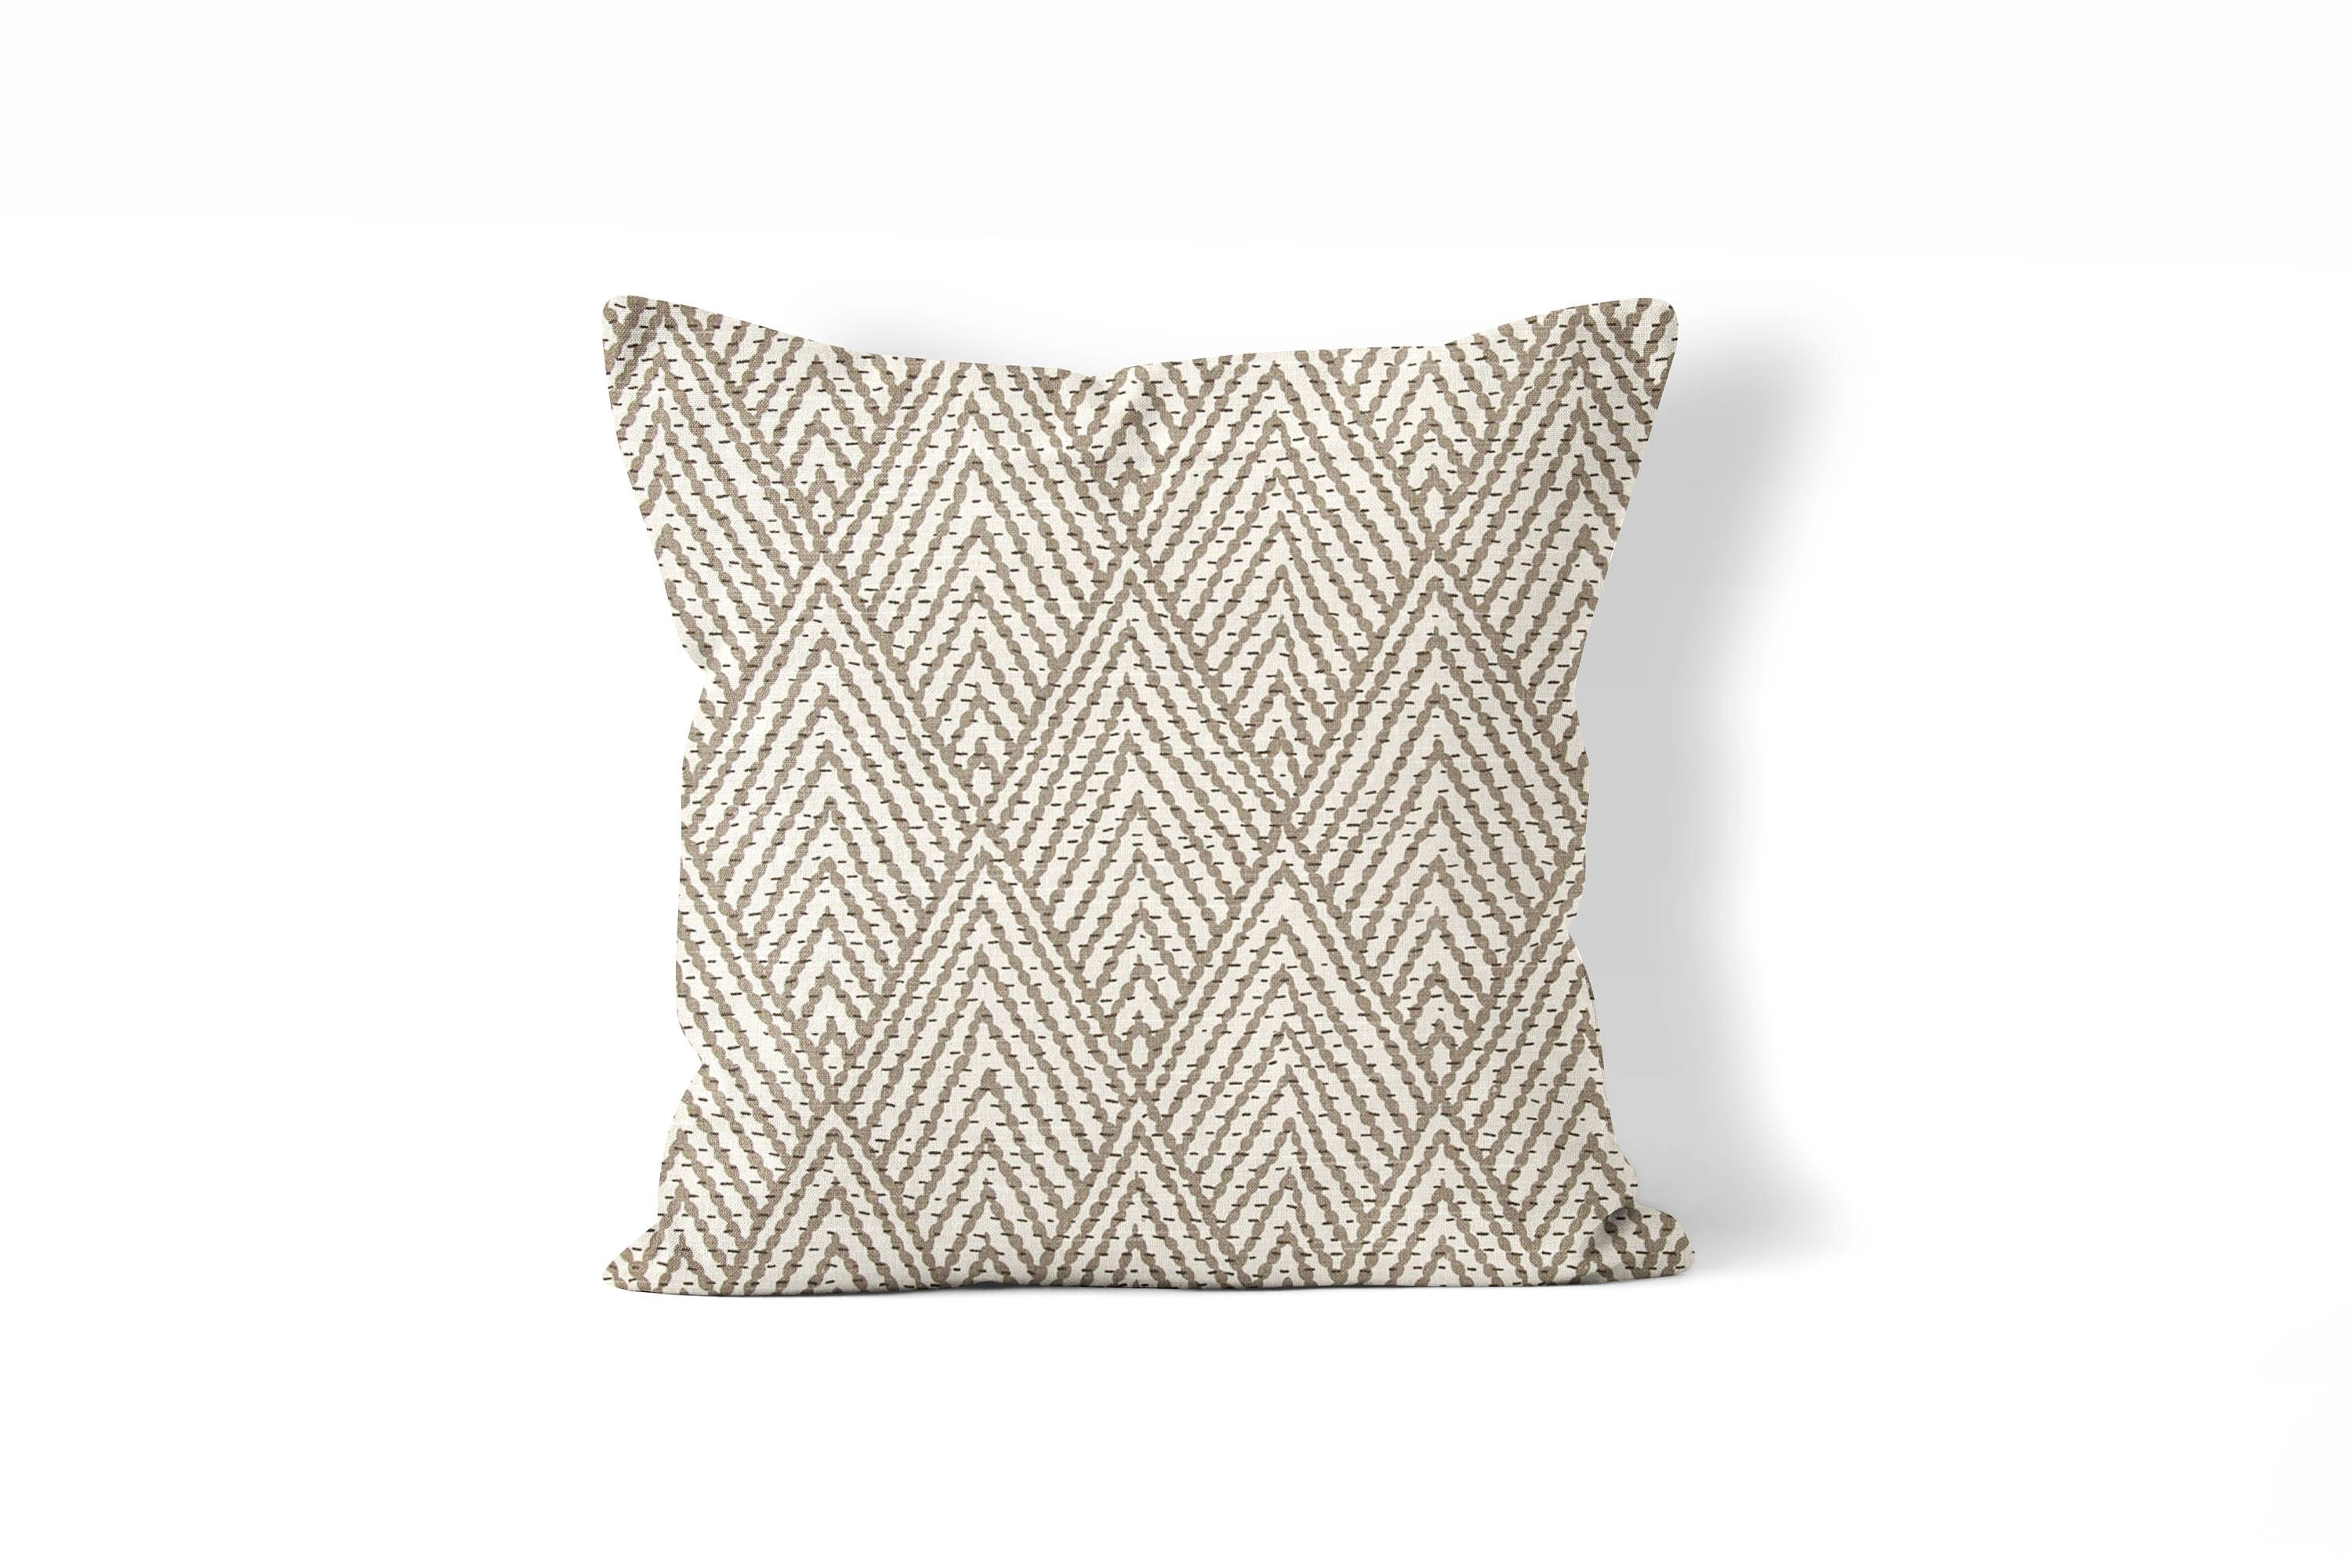 """Now selling: tan pillow cover,art deco print, throw pillow 18""""x18"""", 20""""x20"""", 22x22 or 24""""x24"""" tan and cream, bei...  https://www.etsy.com/listing/532921021/tan-pillow-coverart-deco-print-throw?utm_campaign=crowdfire&utm_content=crowdfire&utm_medium=social&utm_source=pinterest"""